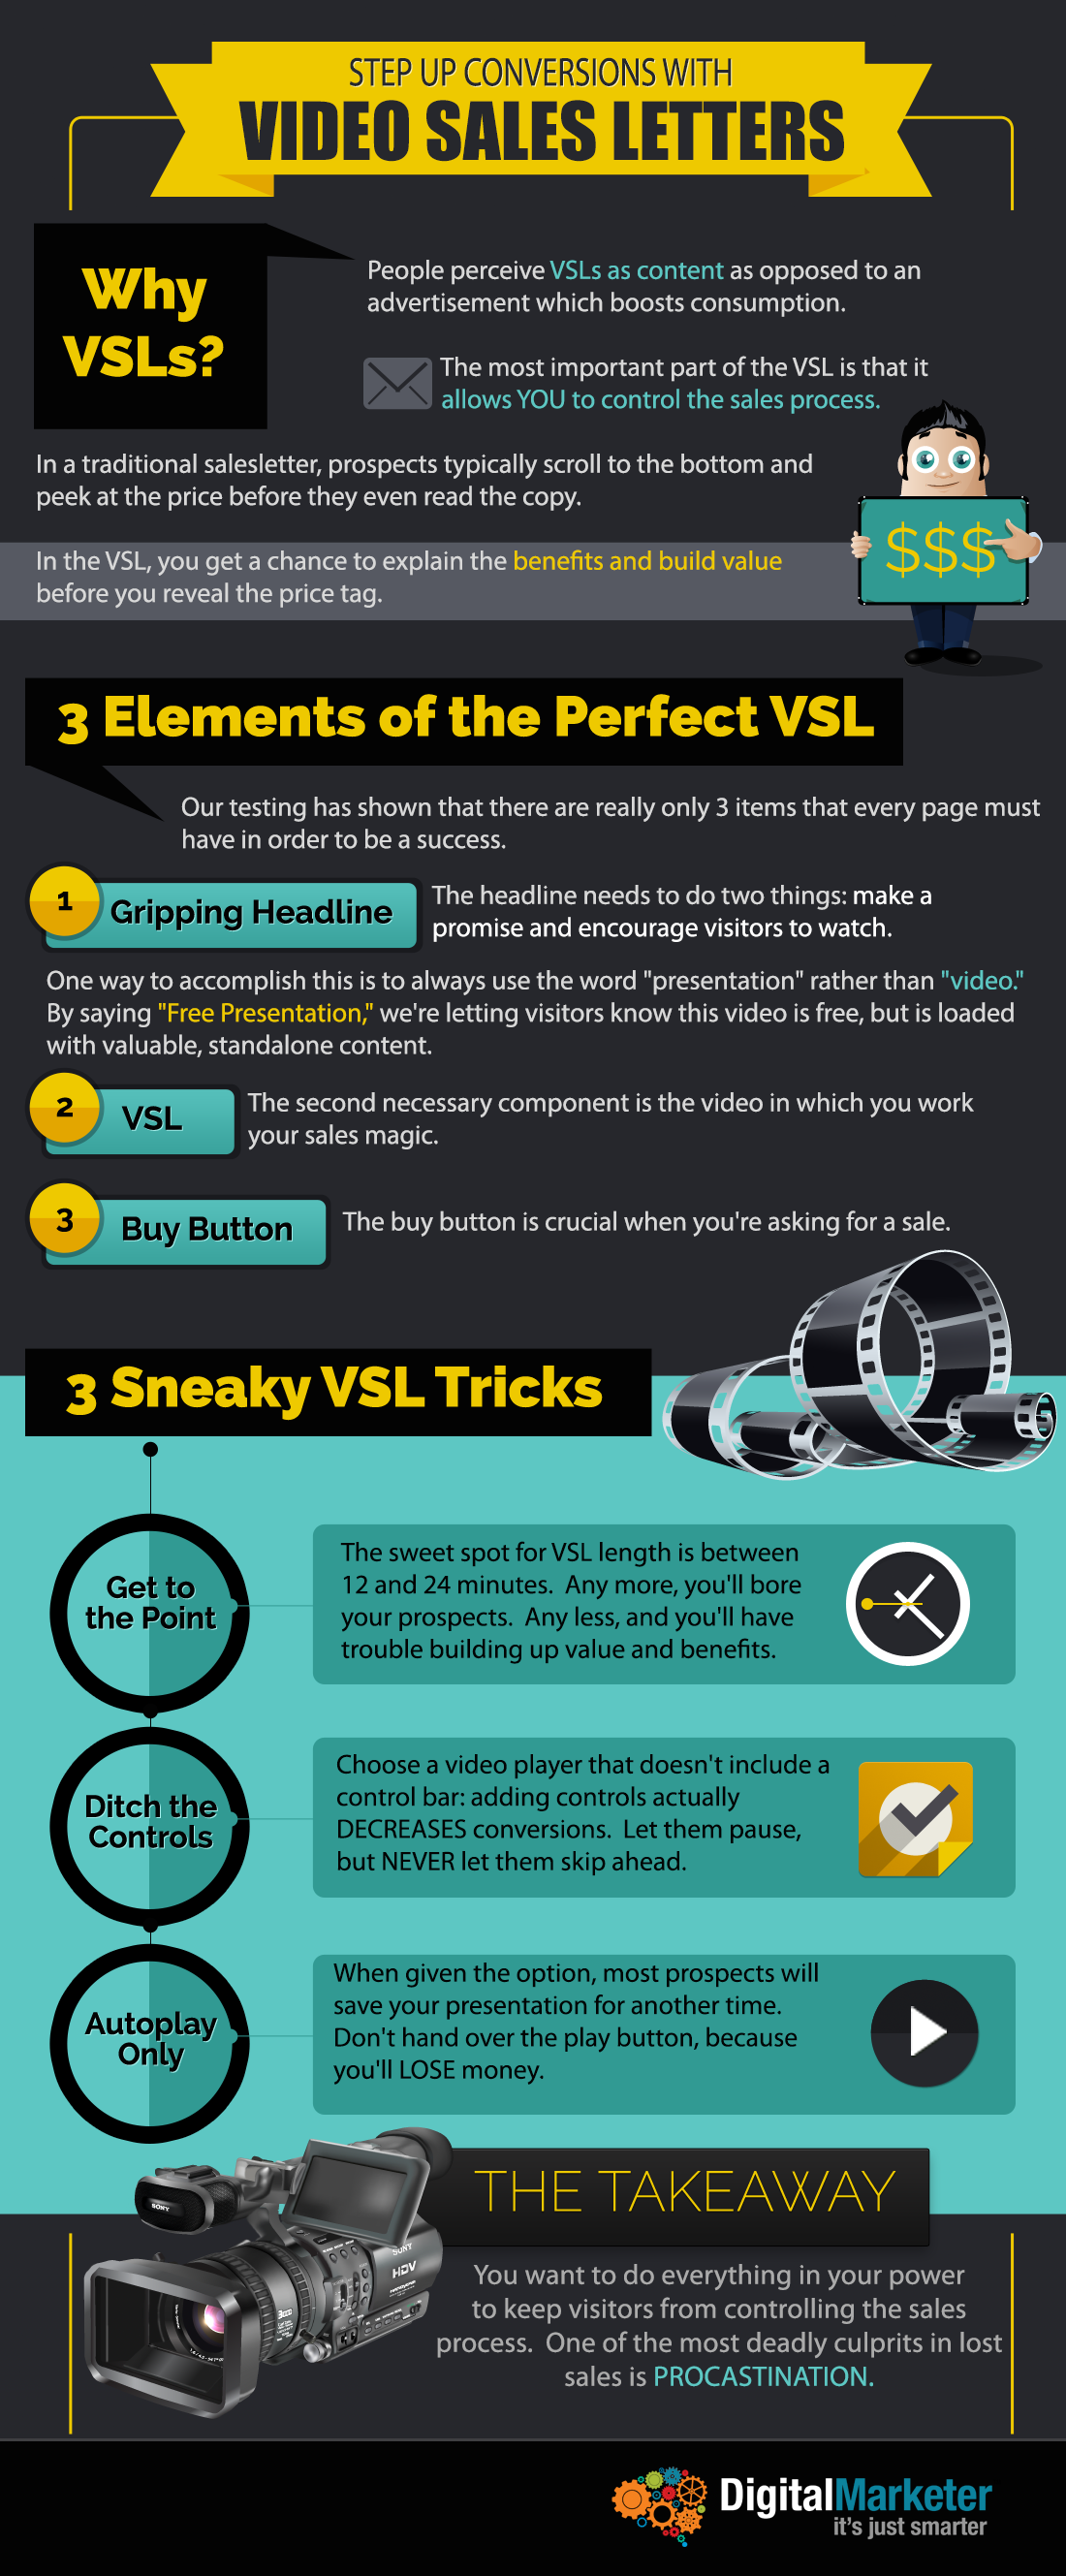 Video Sales Letters Great Idea Infographic Step Up Conversions